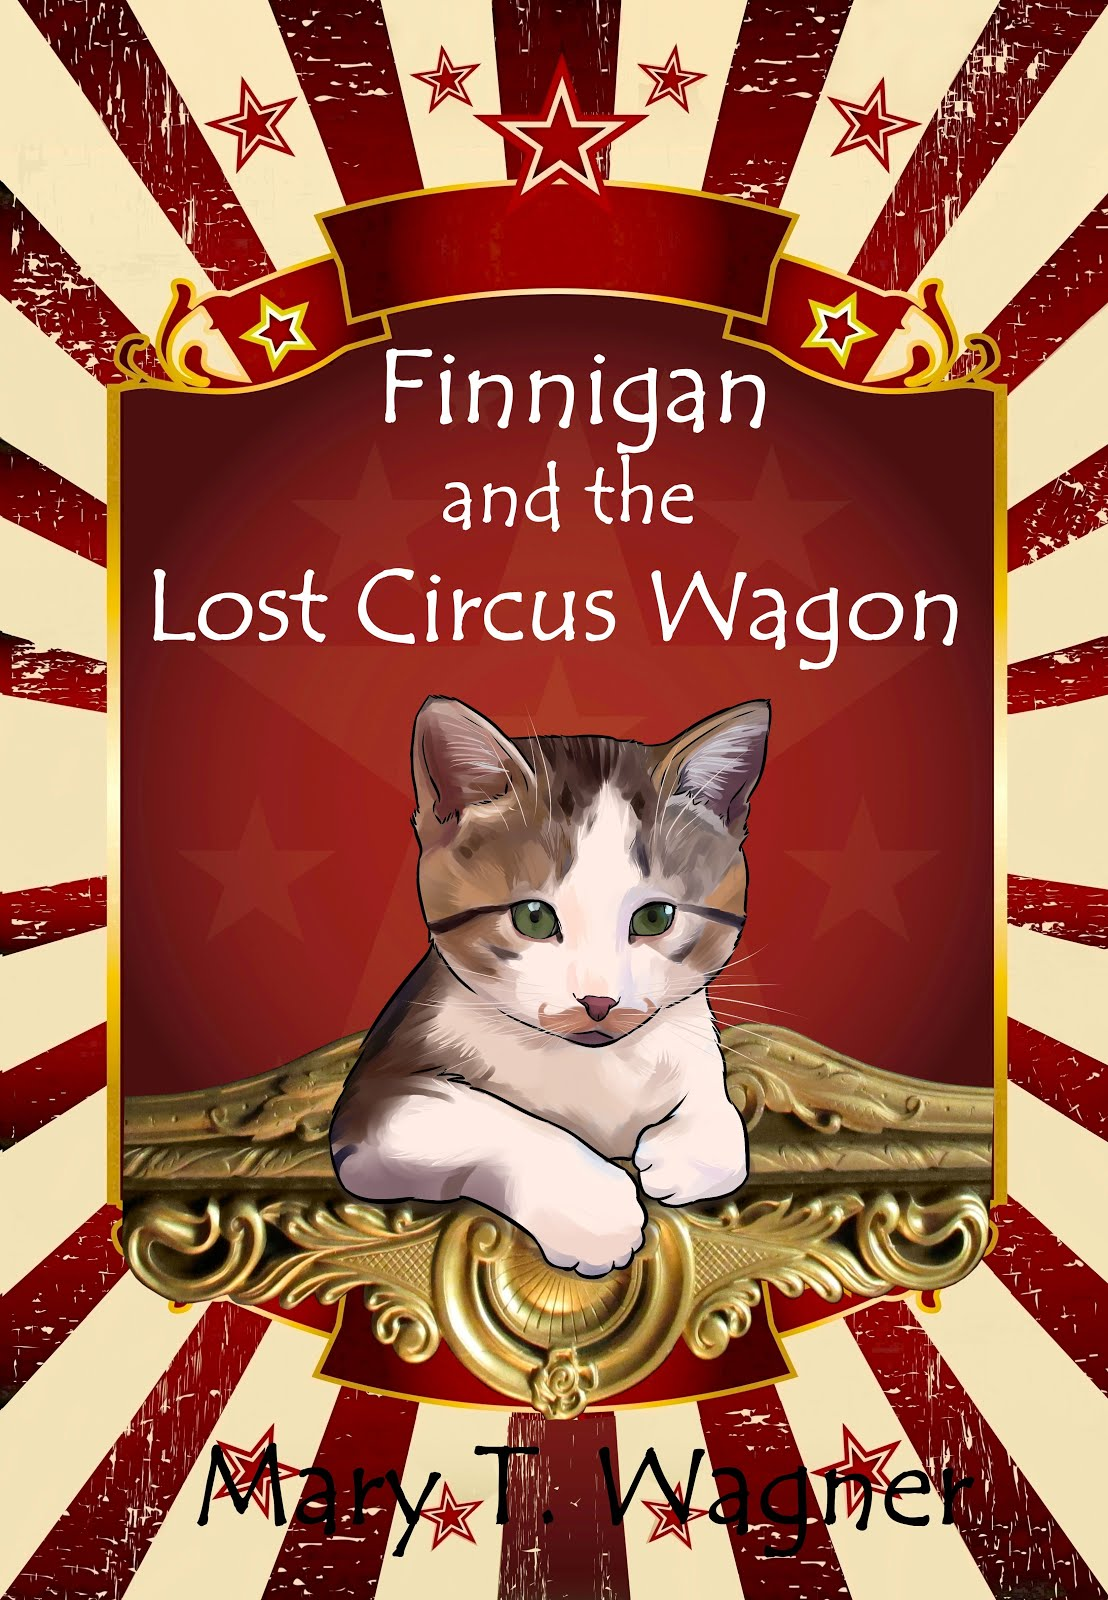 Book 2 of the Finnigan Series!